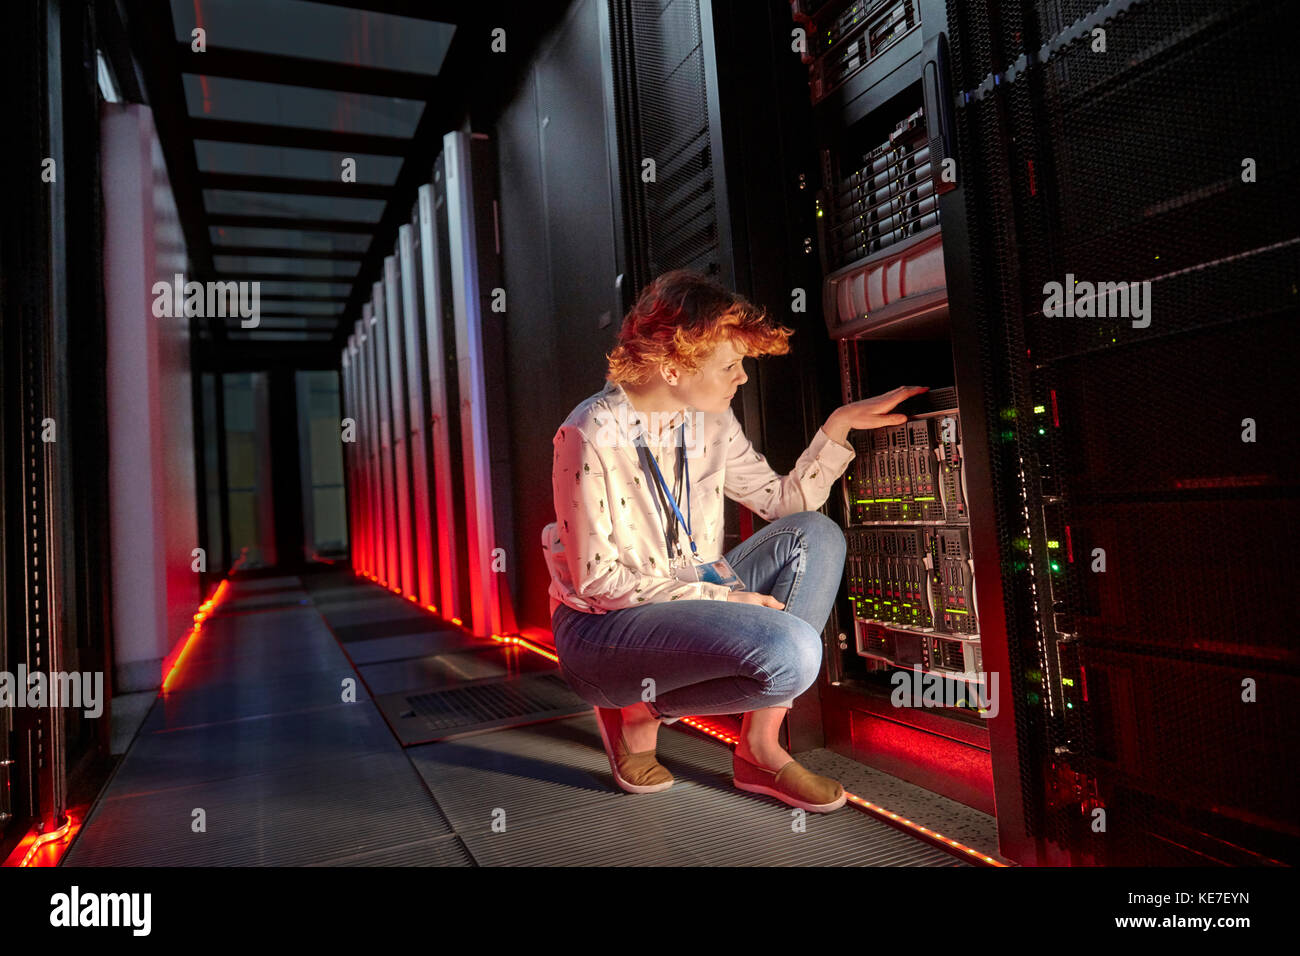 Weibliche it-techniker Prüfung Panel in dunklen Server-Raum Stockbild